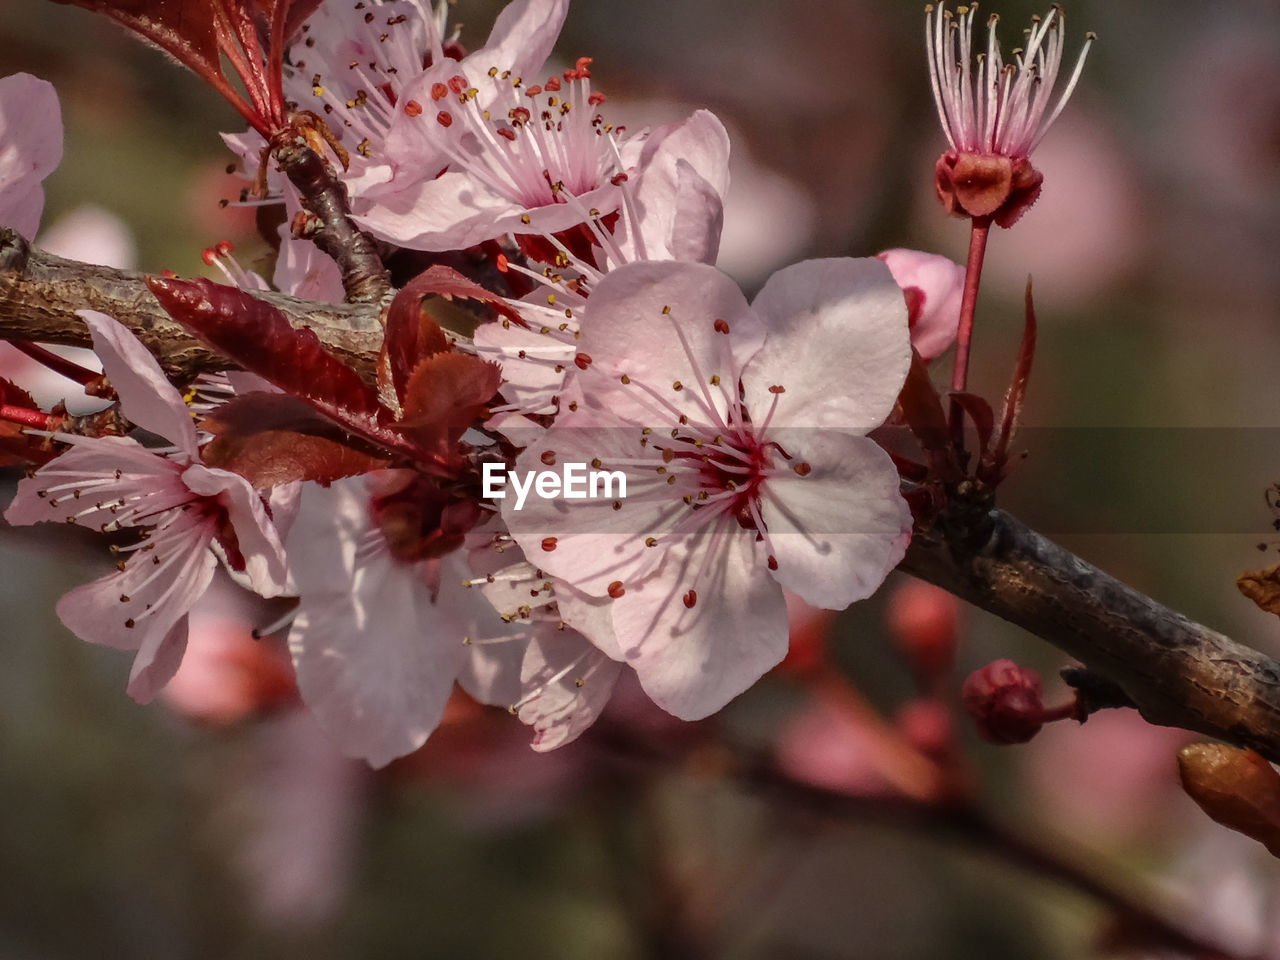 flower, fragility, beauty in nature, blossom, nature, petal, growth, freshness, springtime, tree, botany, flower head, stamen, branch, white color, close-up, no people, focus on foreground, day, outdoors, pollen, blooming